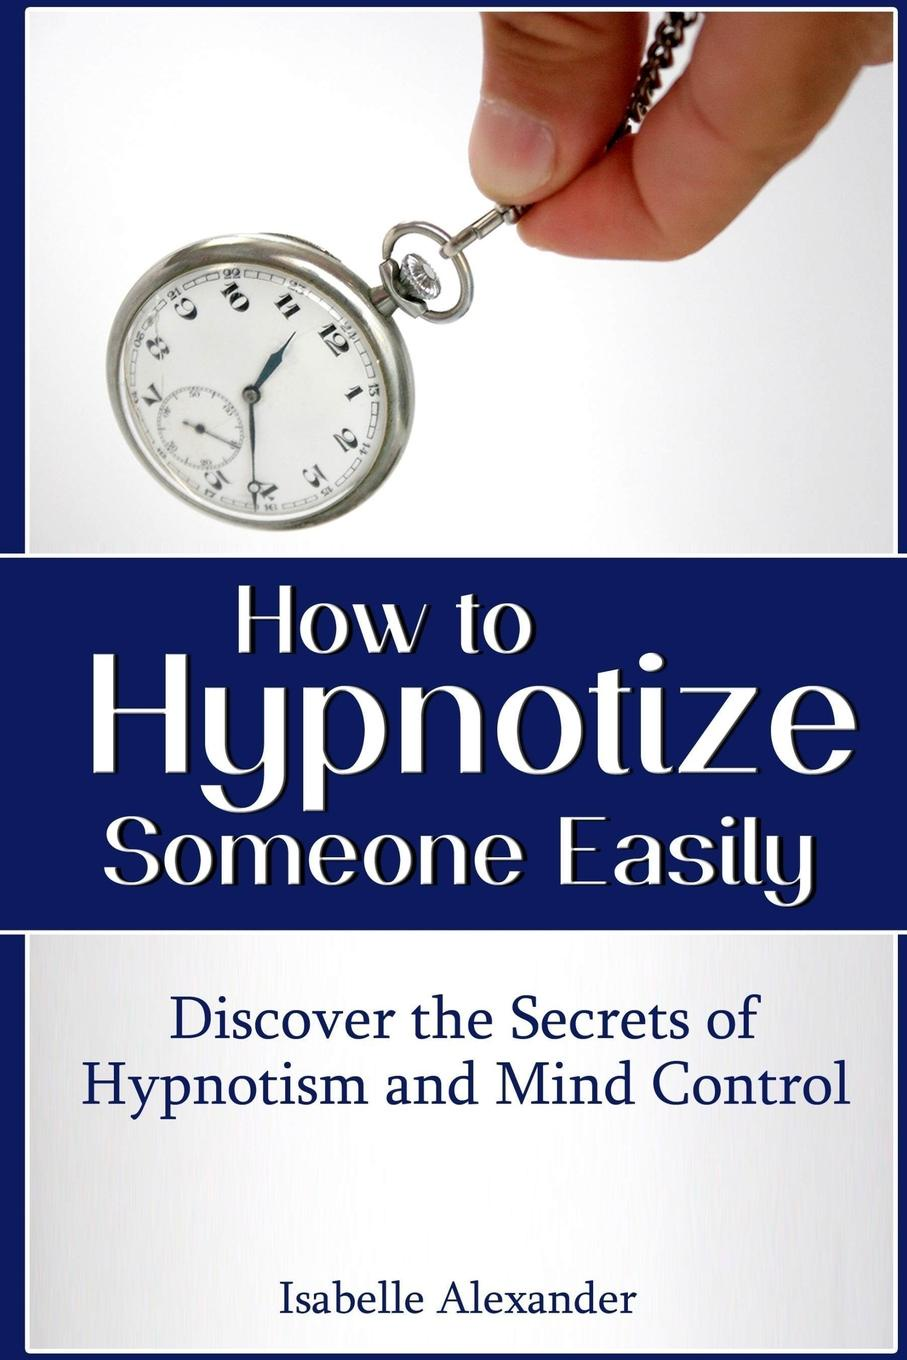 Isabelle Alexander How to Hypnotize Someone Easily. Discover the Secrets of Hypnotism and Mind Control roberta graziano food counselling how to motivate people to change eating habits